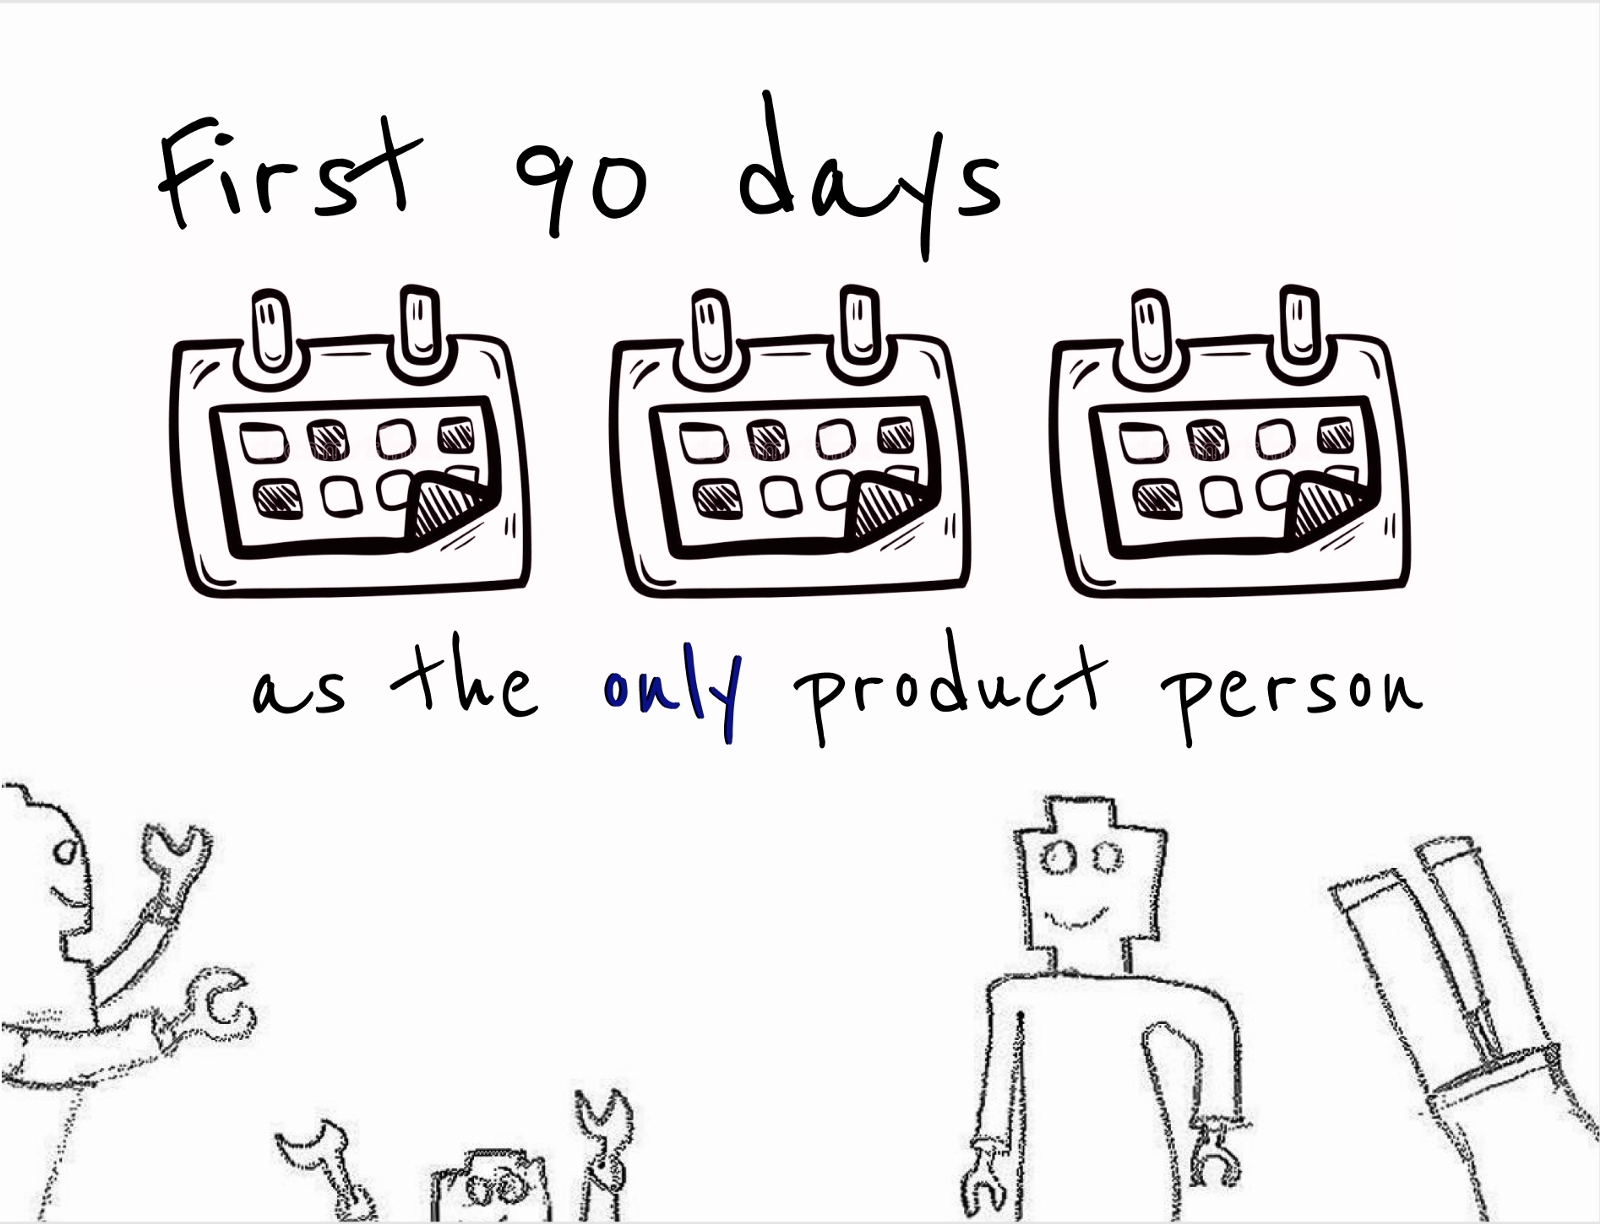 First 90 days as a Product Manager